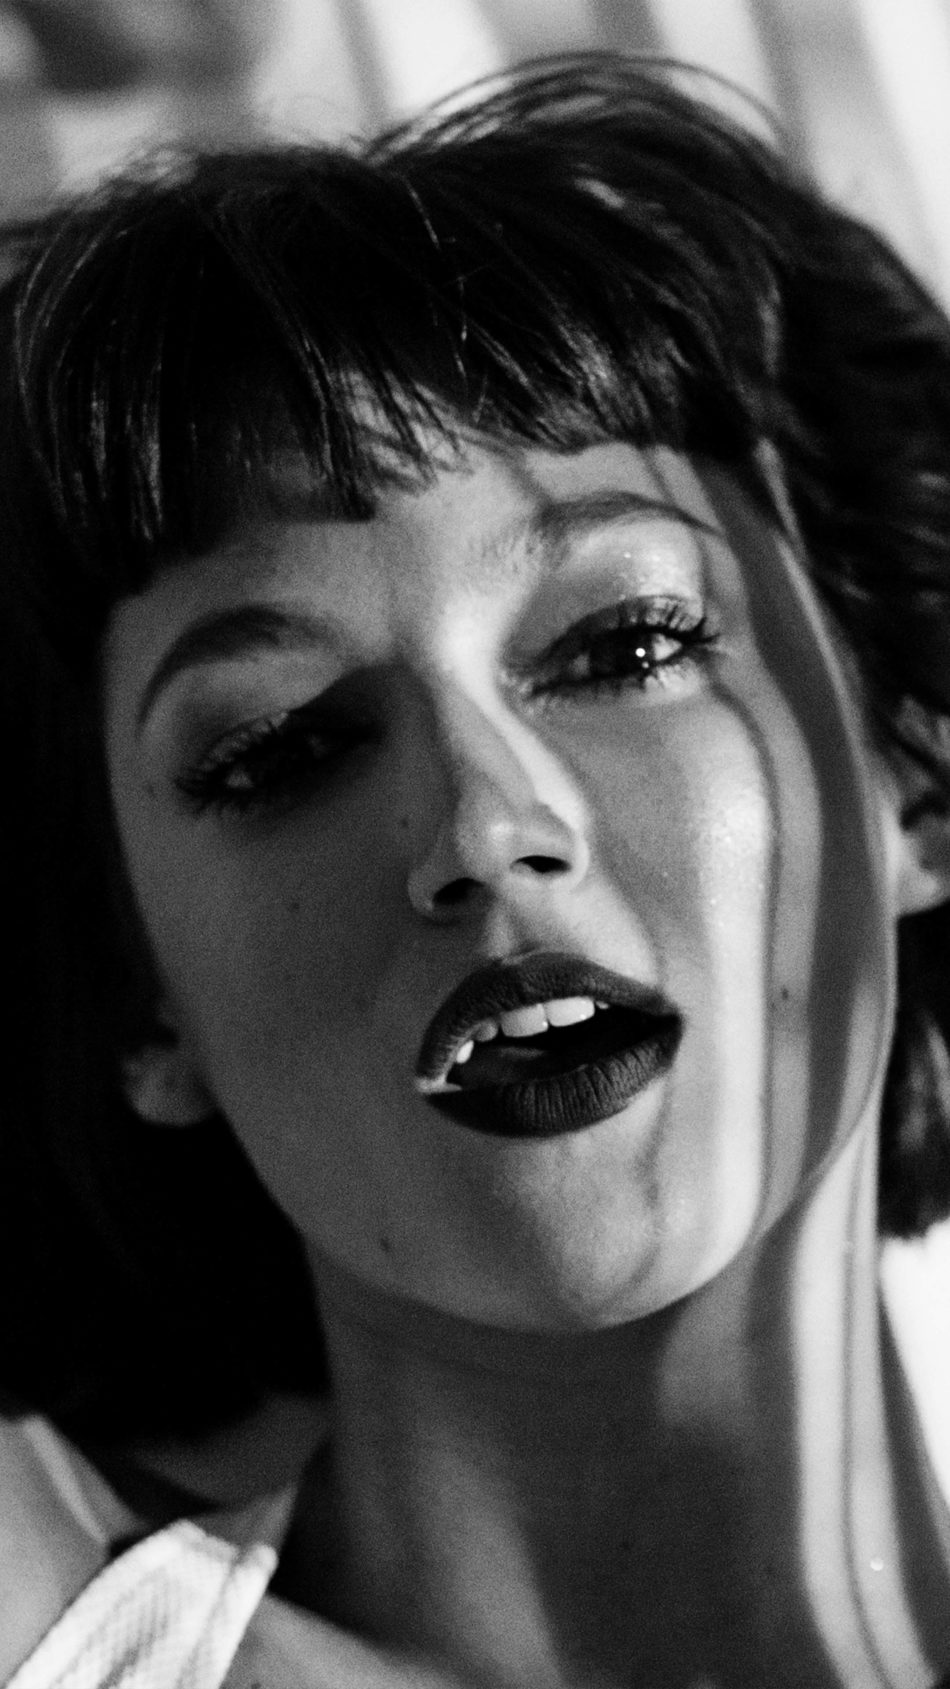 Ursula Corbero Closeup Black & White 4K Ultra HD Mobile Wallpaper